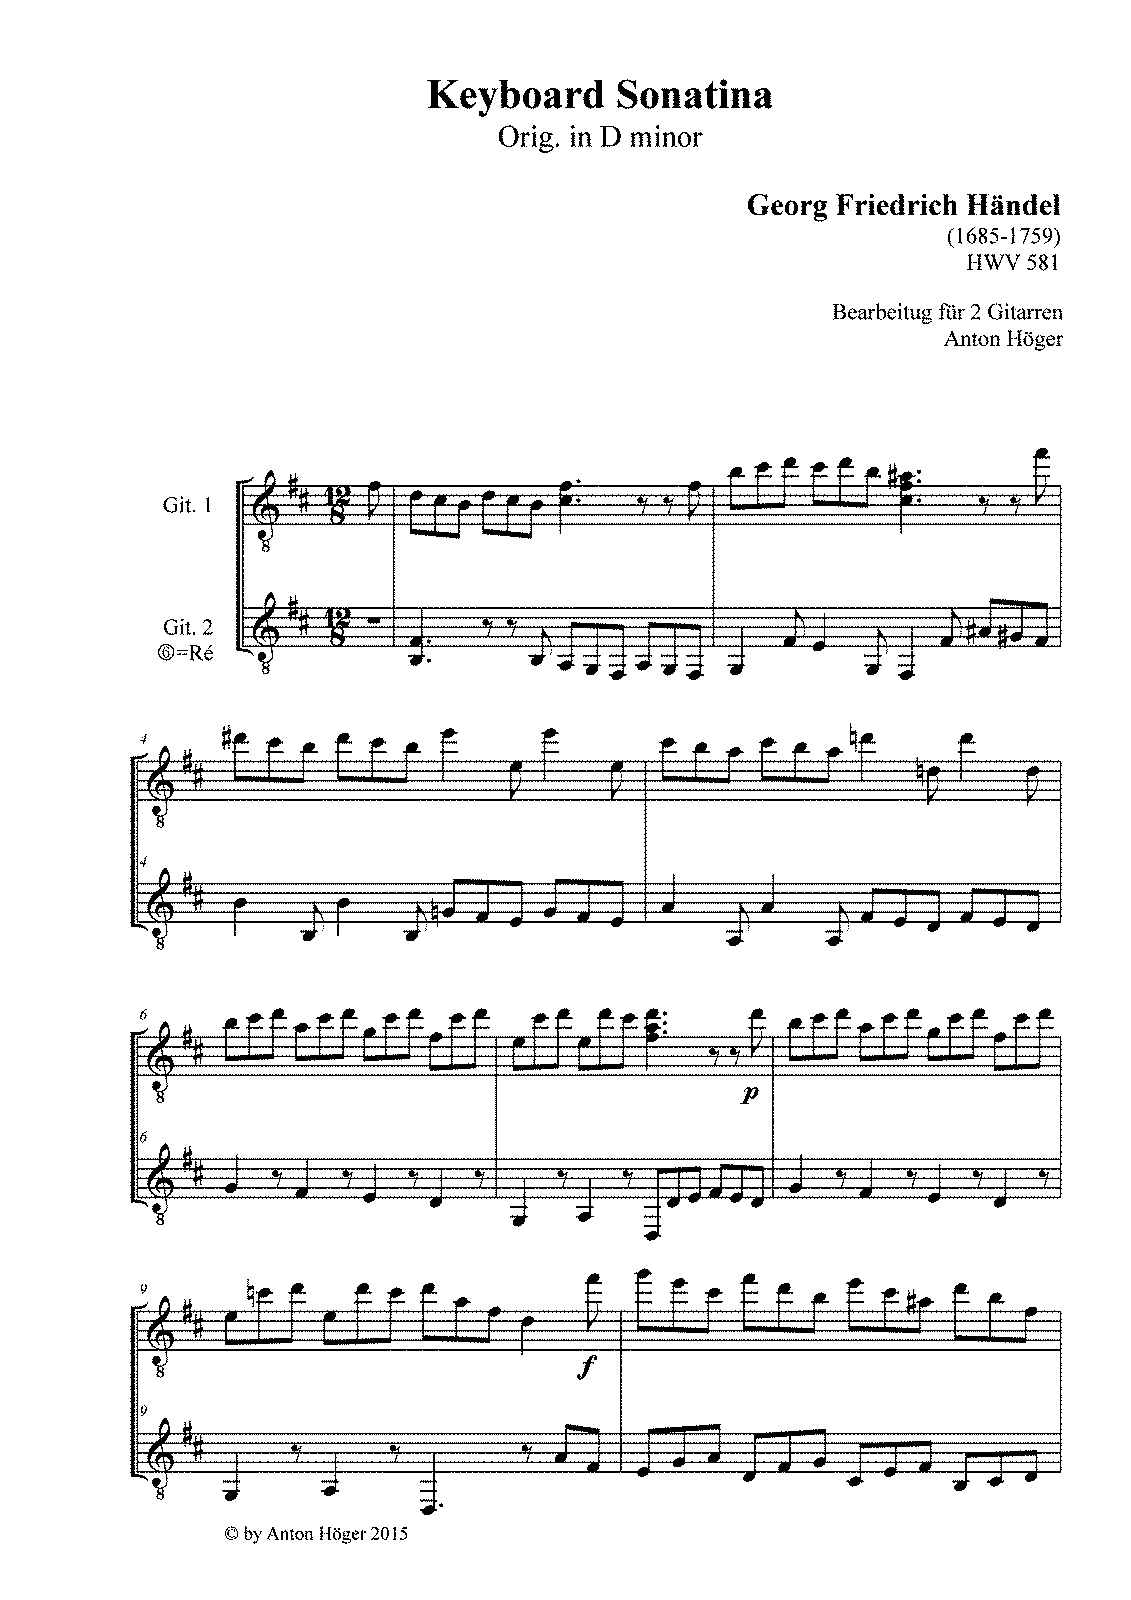 PMLP480396-Händel - Keyboard Sonatina in D minor, HWV 581.pdf